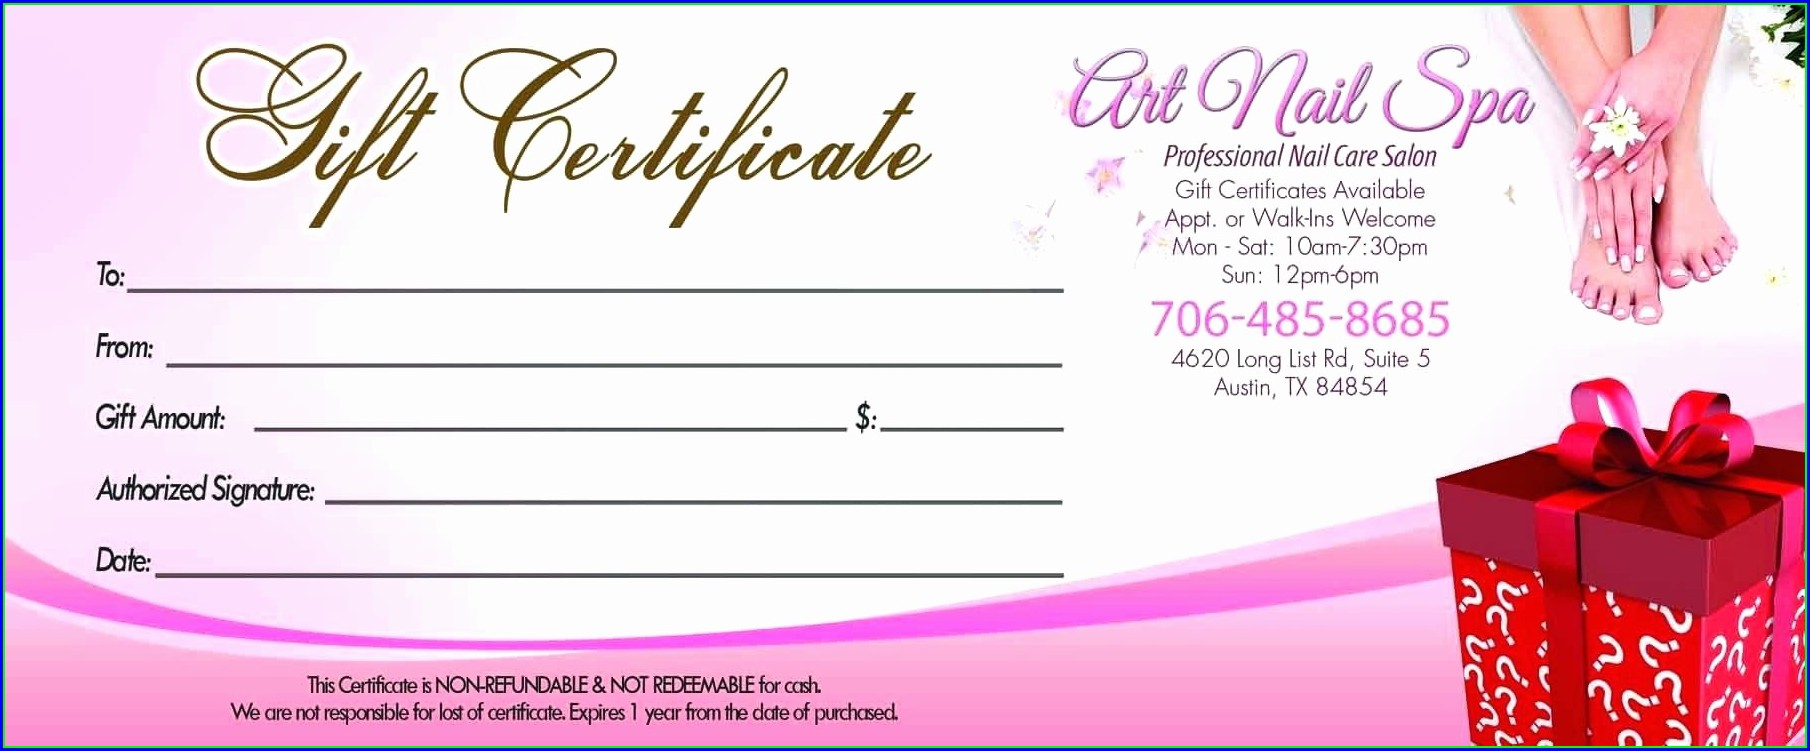 Hair Salon Gift Certificate Template Christmas